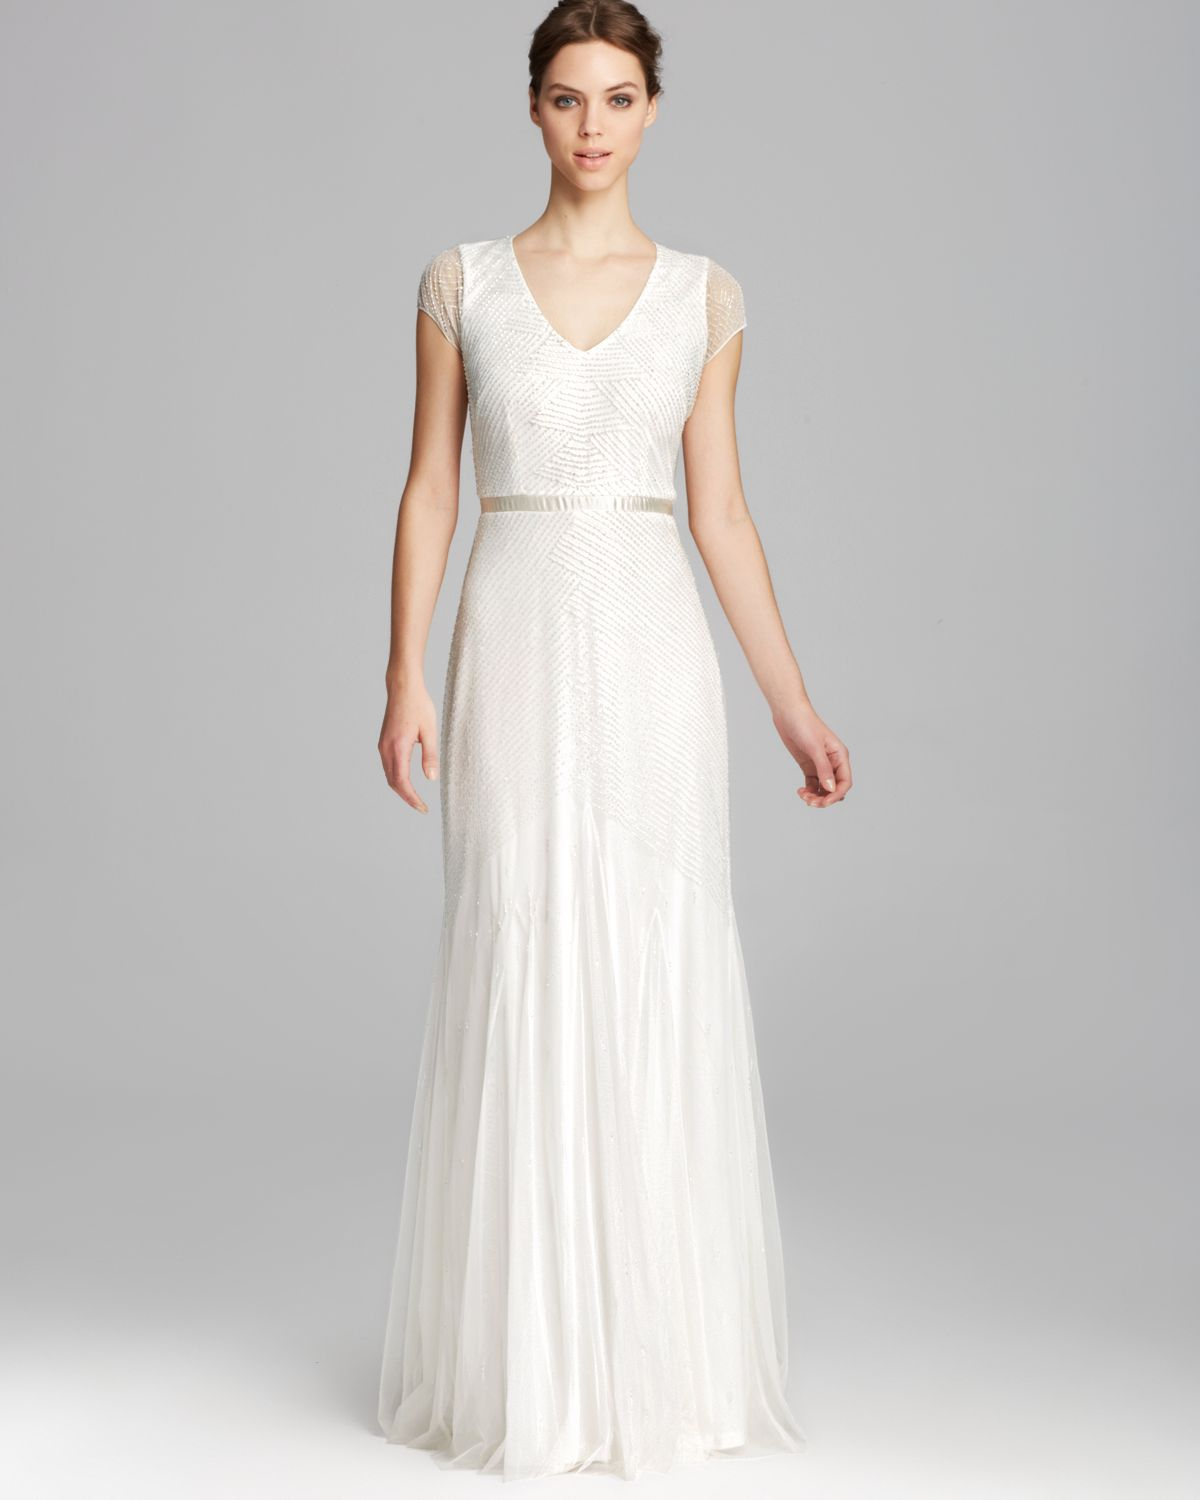 Adrianna Papell Gown - Cap Sleeve V Neck Beaded in White - Lyst